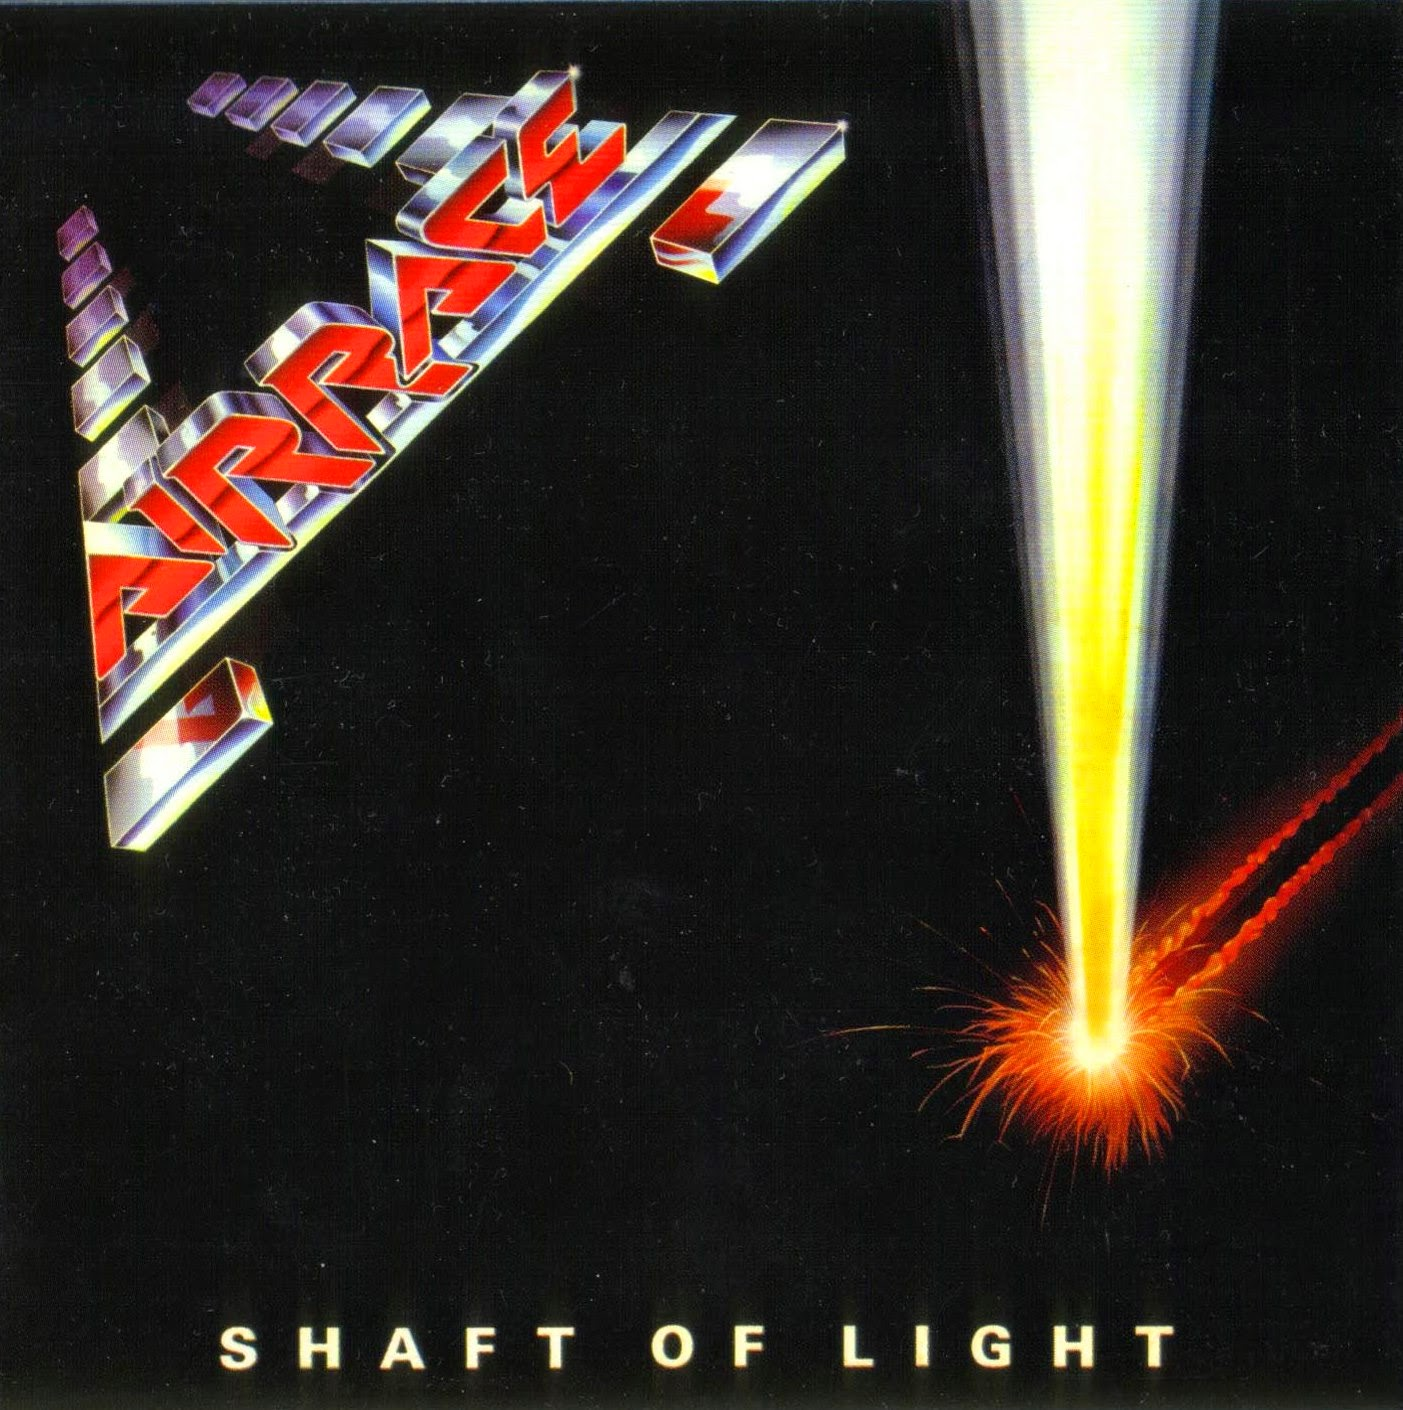 Airrace Shaft of light 1984 aor melodic rock music blogspot albums bands